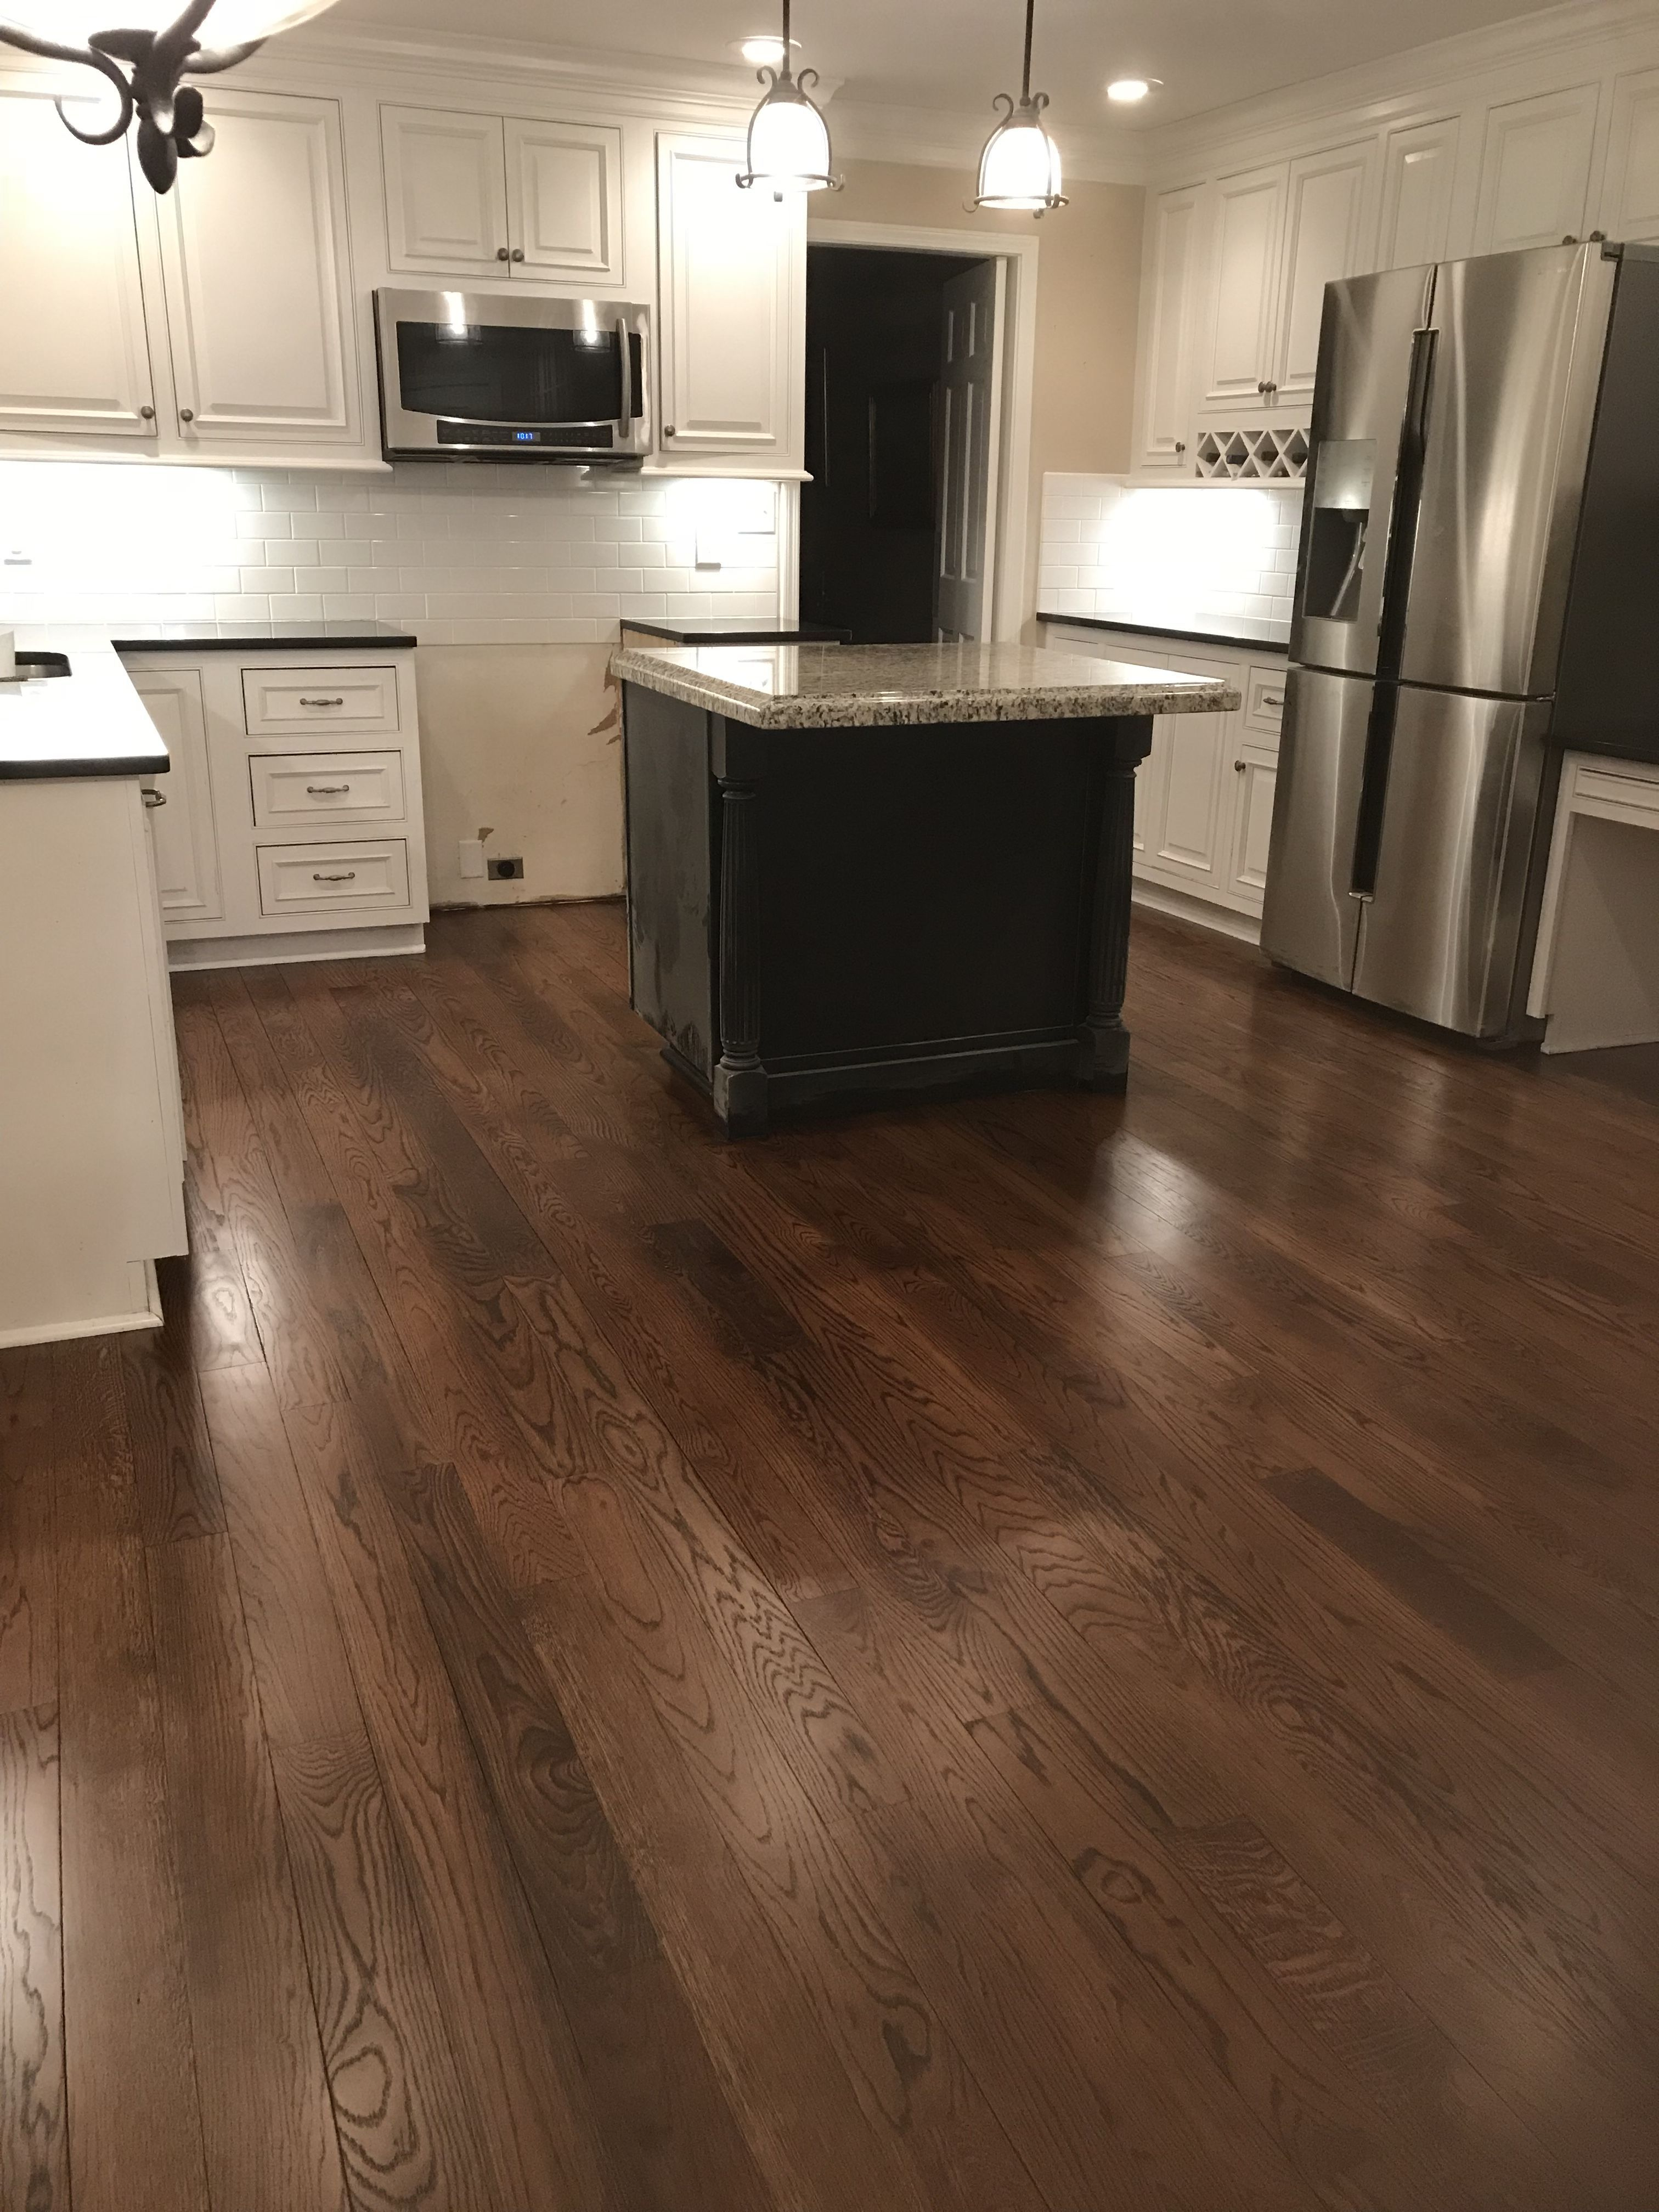 Duraseal spice brown with tinted satin polyurethane finish